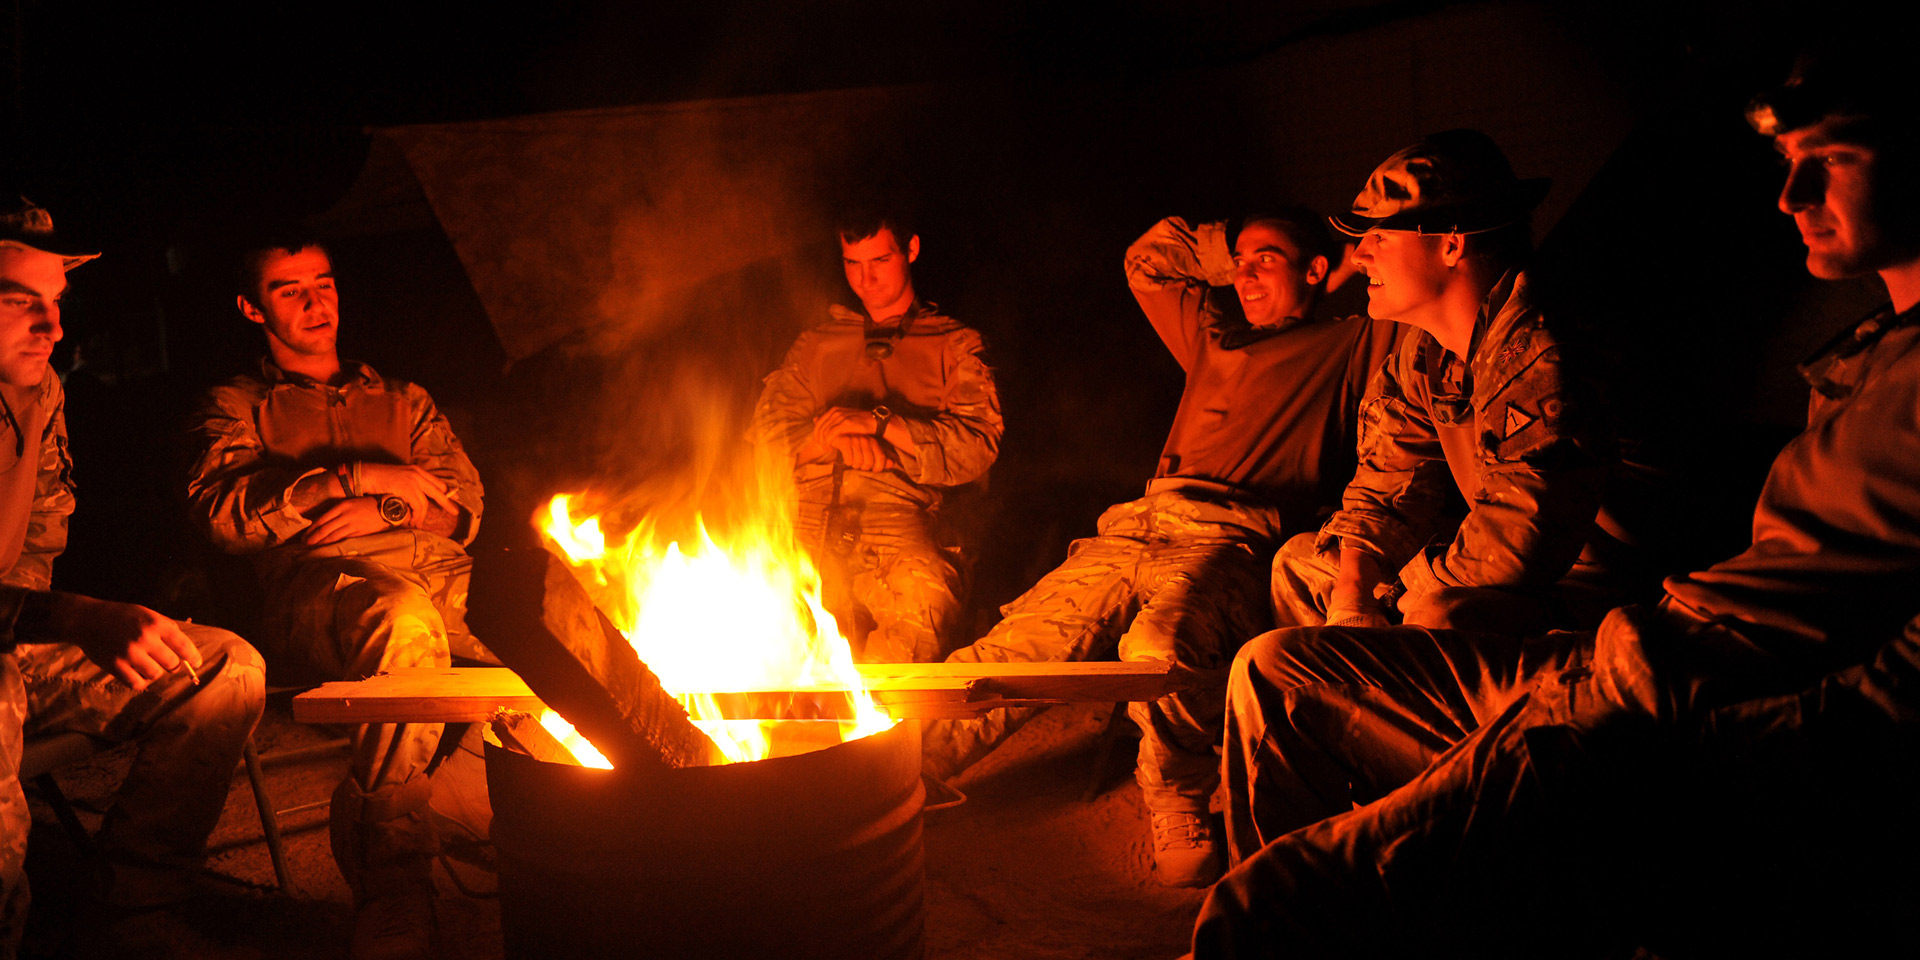 Soldiers round a fire